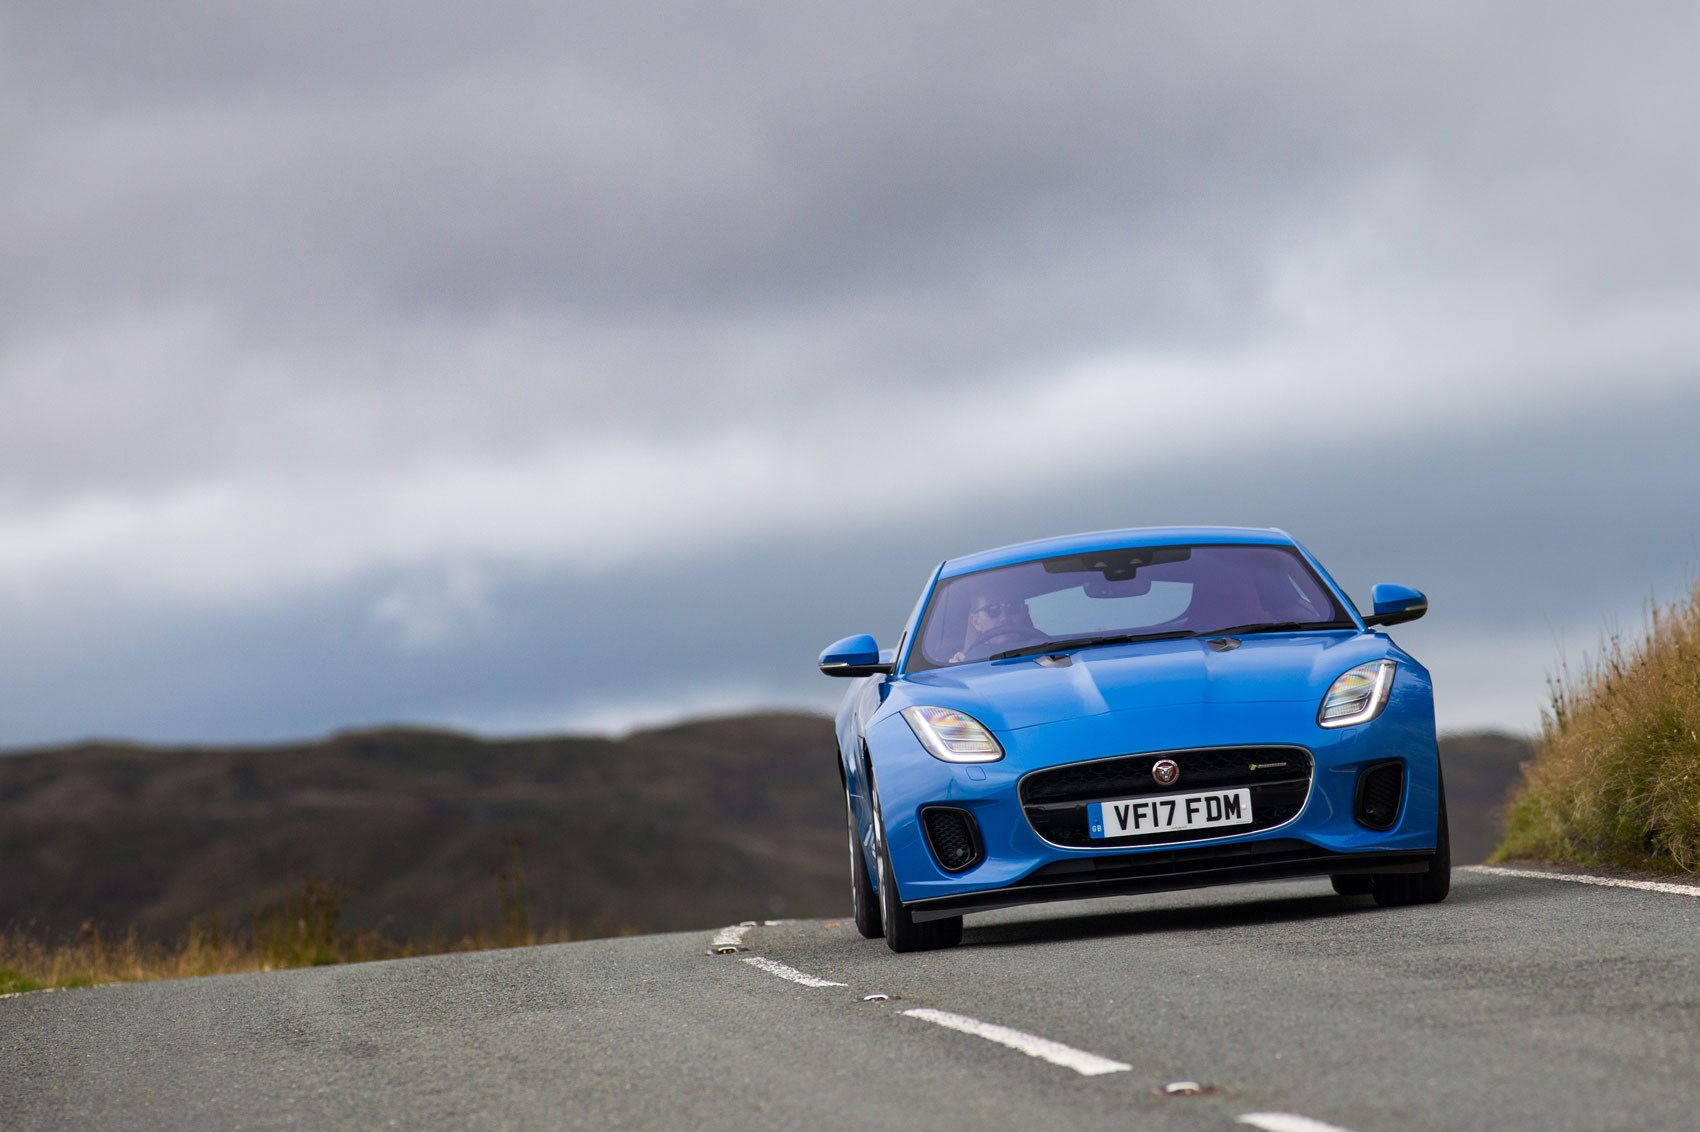 Jaguar F-type 4cyl hill cornering